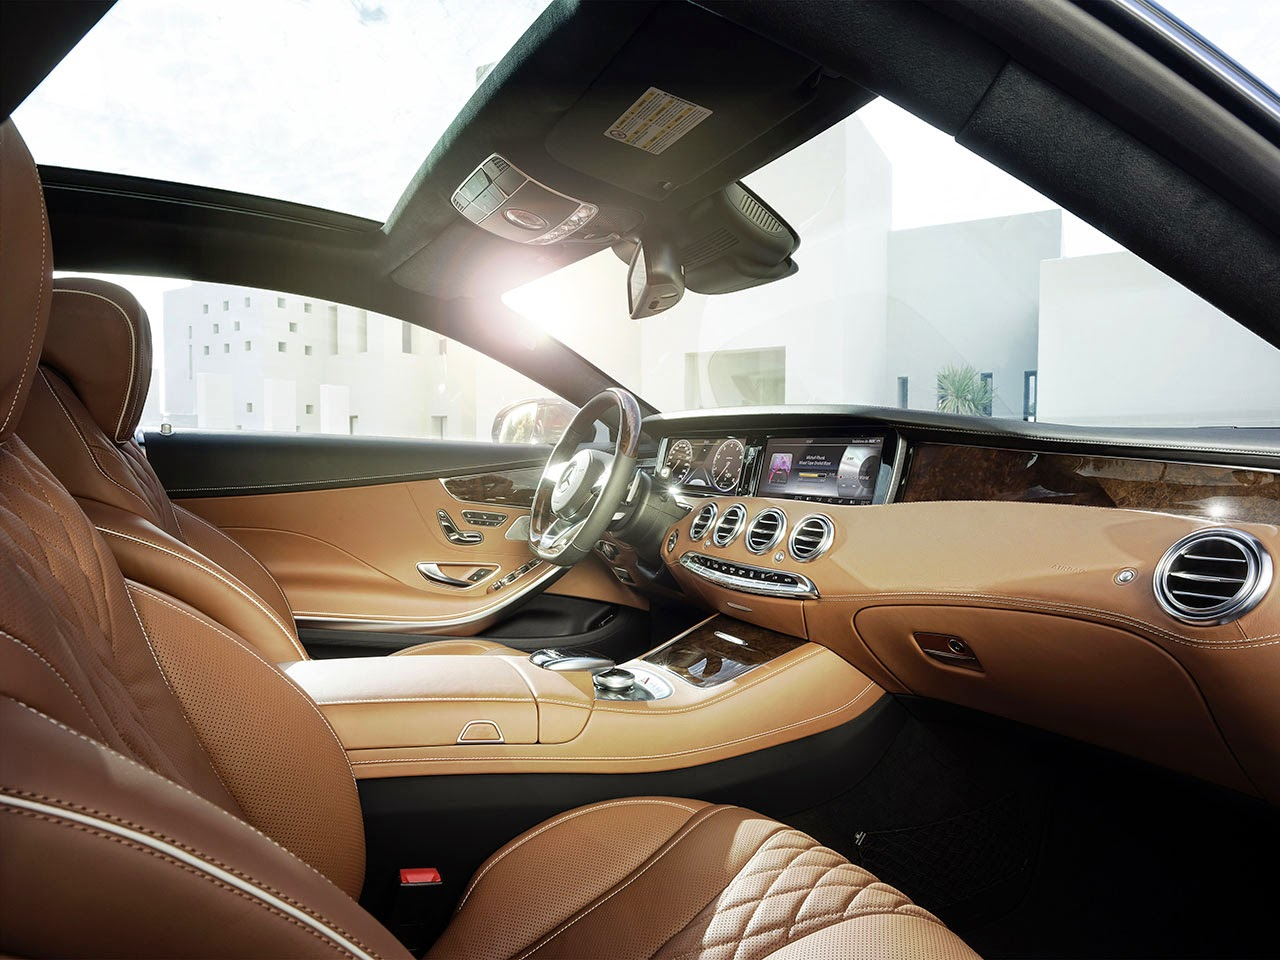 Mercedes-Benz S-Class Coupé interior